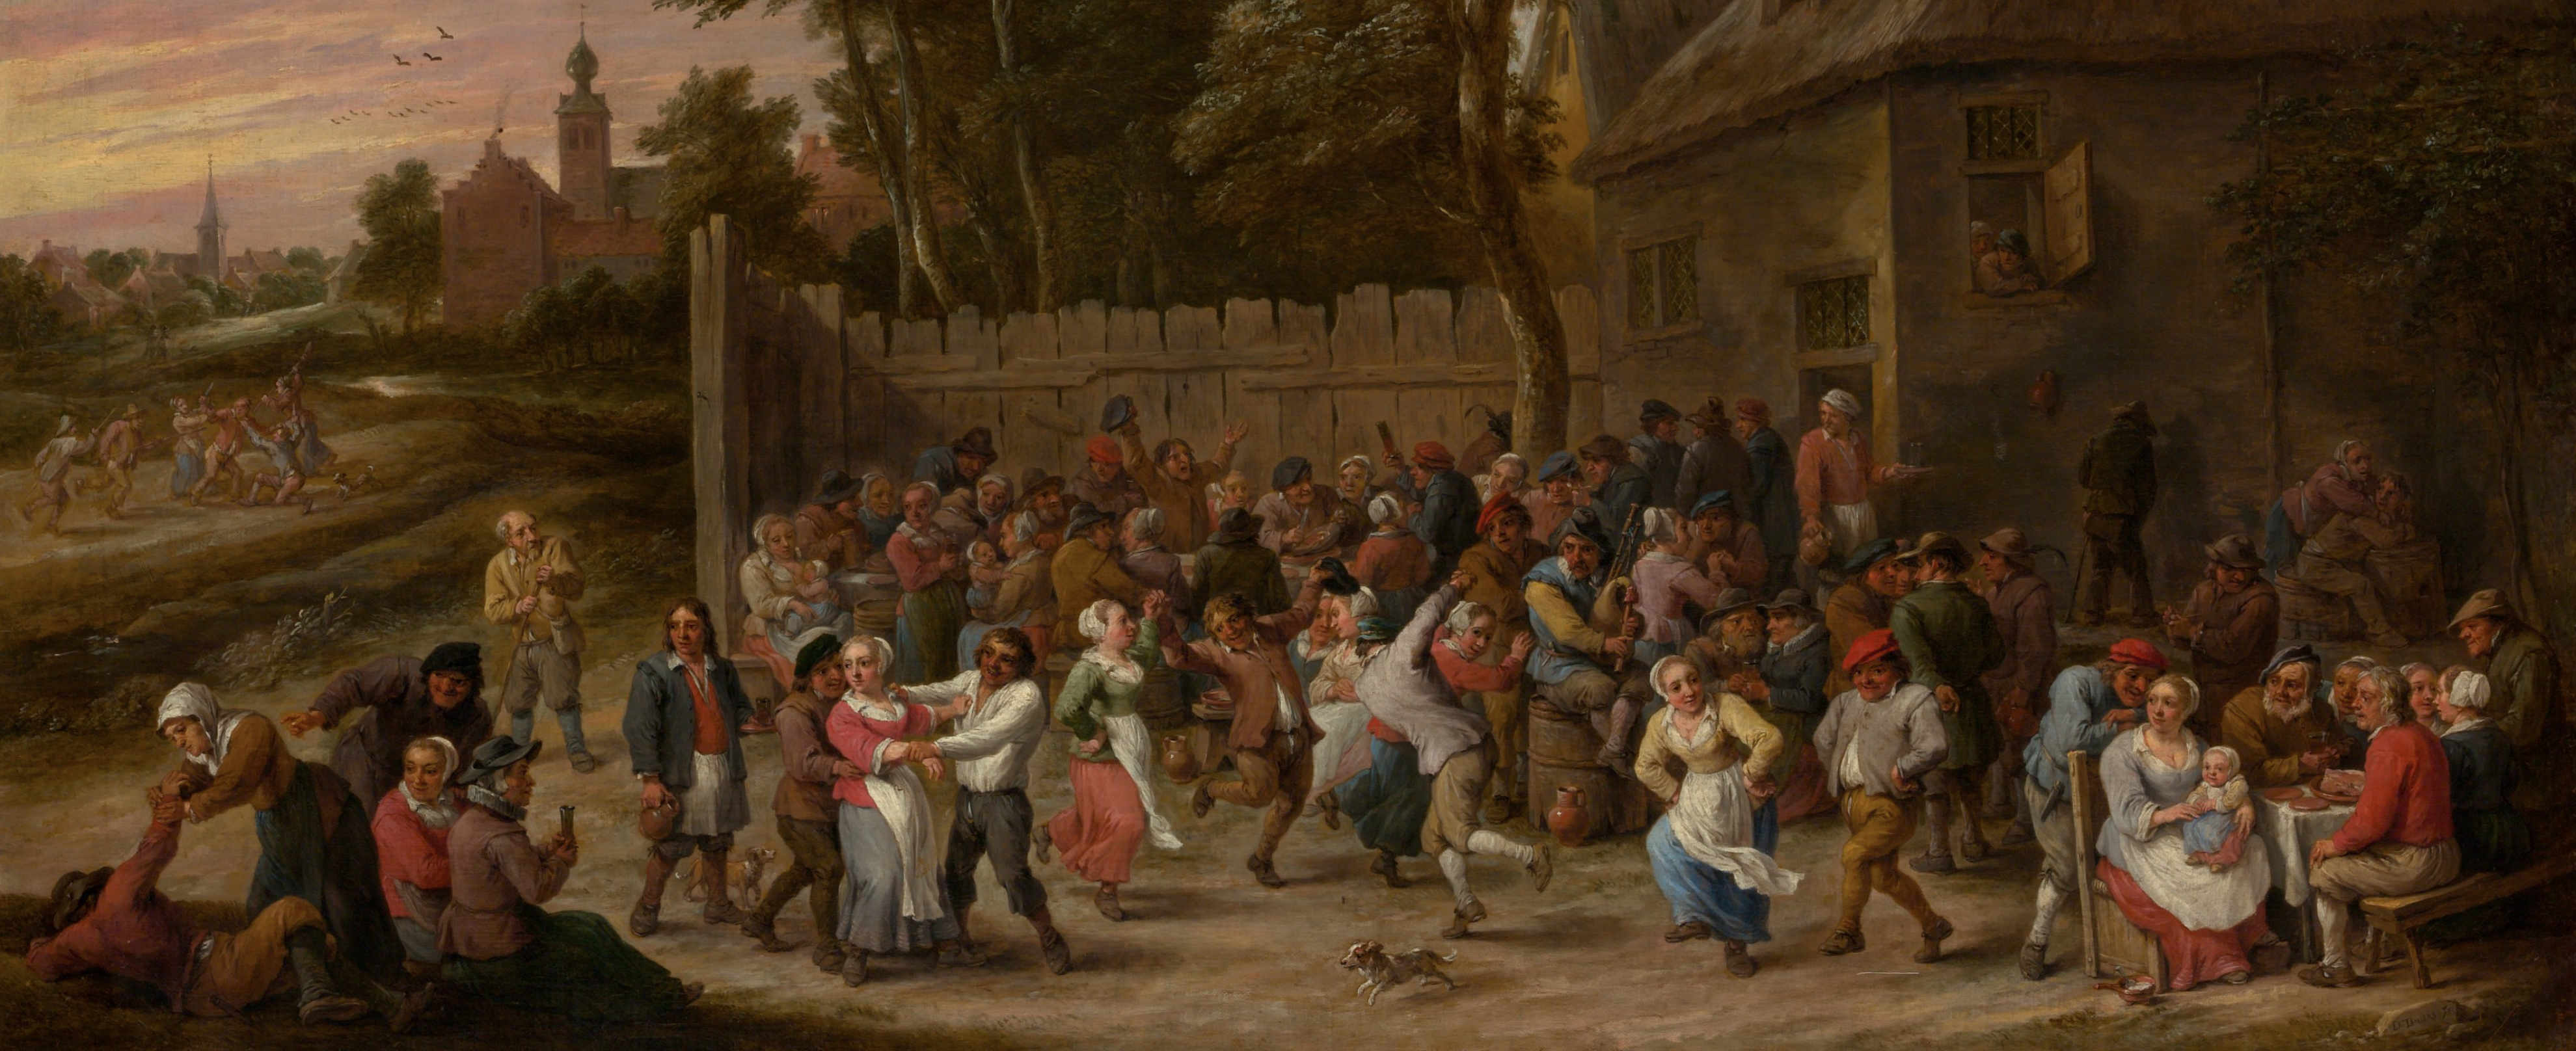 David Teniers the Younger (Flemish, Antwerp 1610–1690 Brussels)